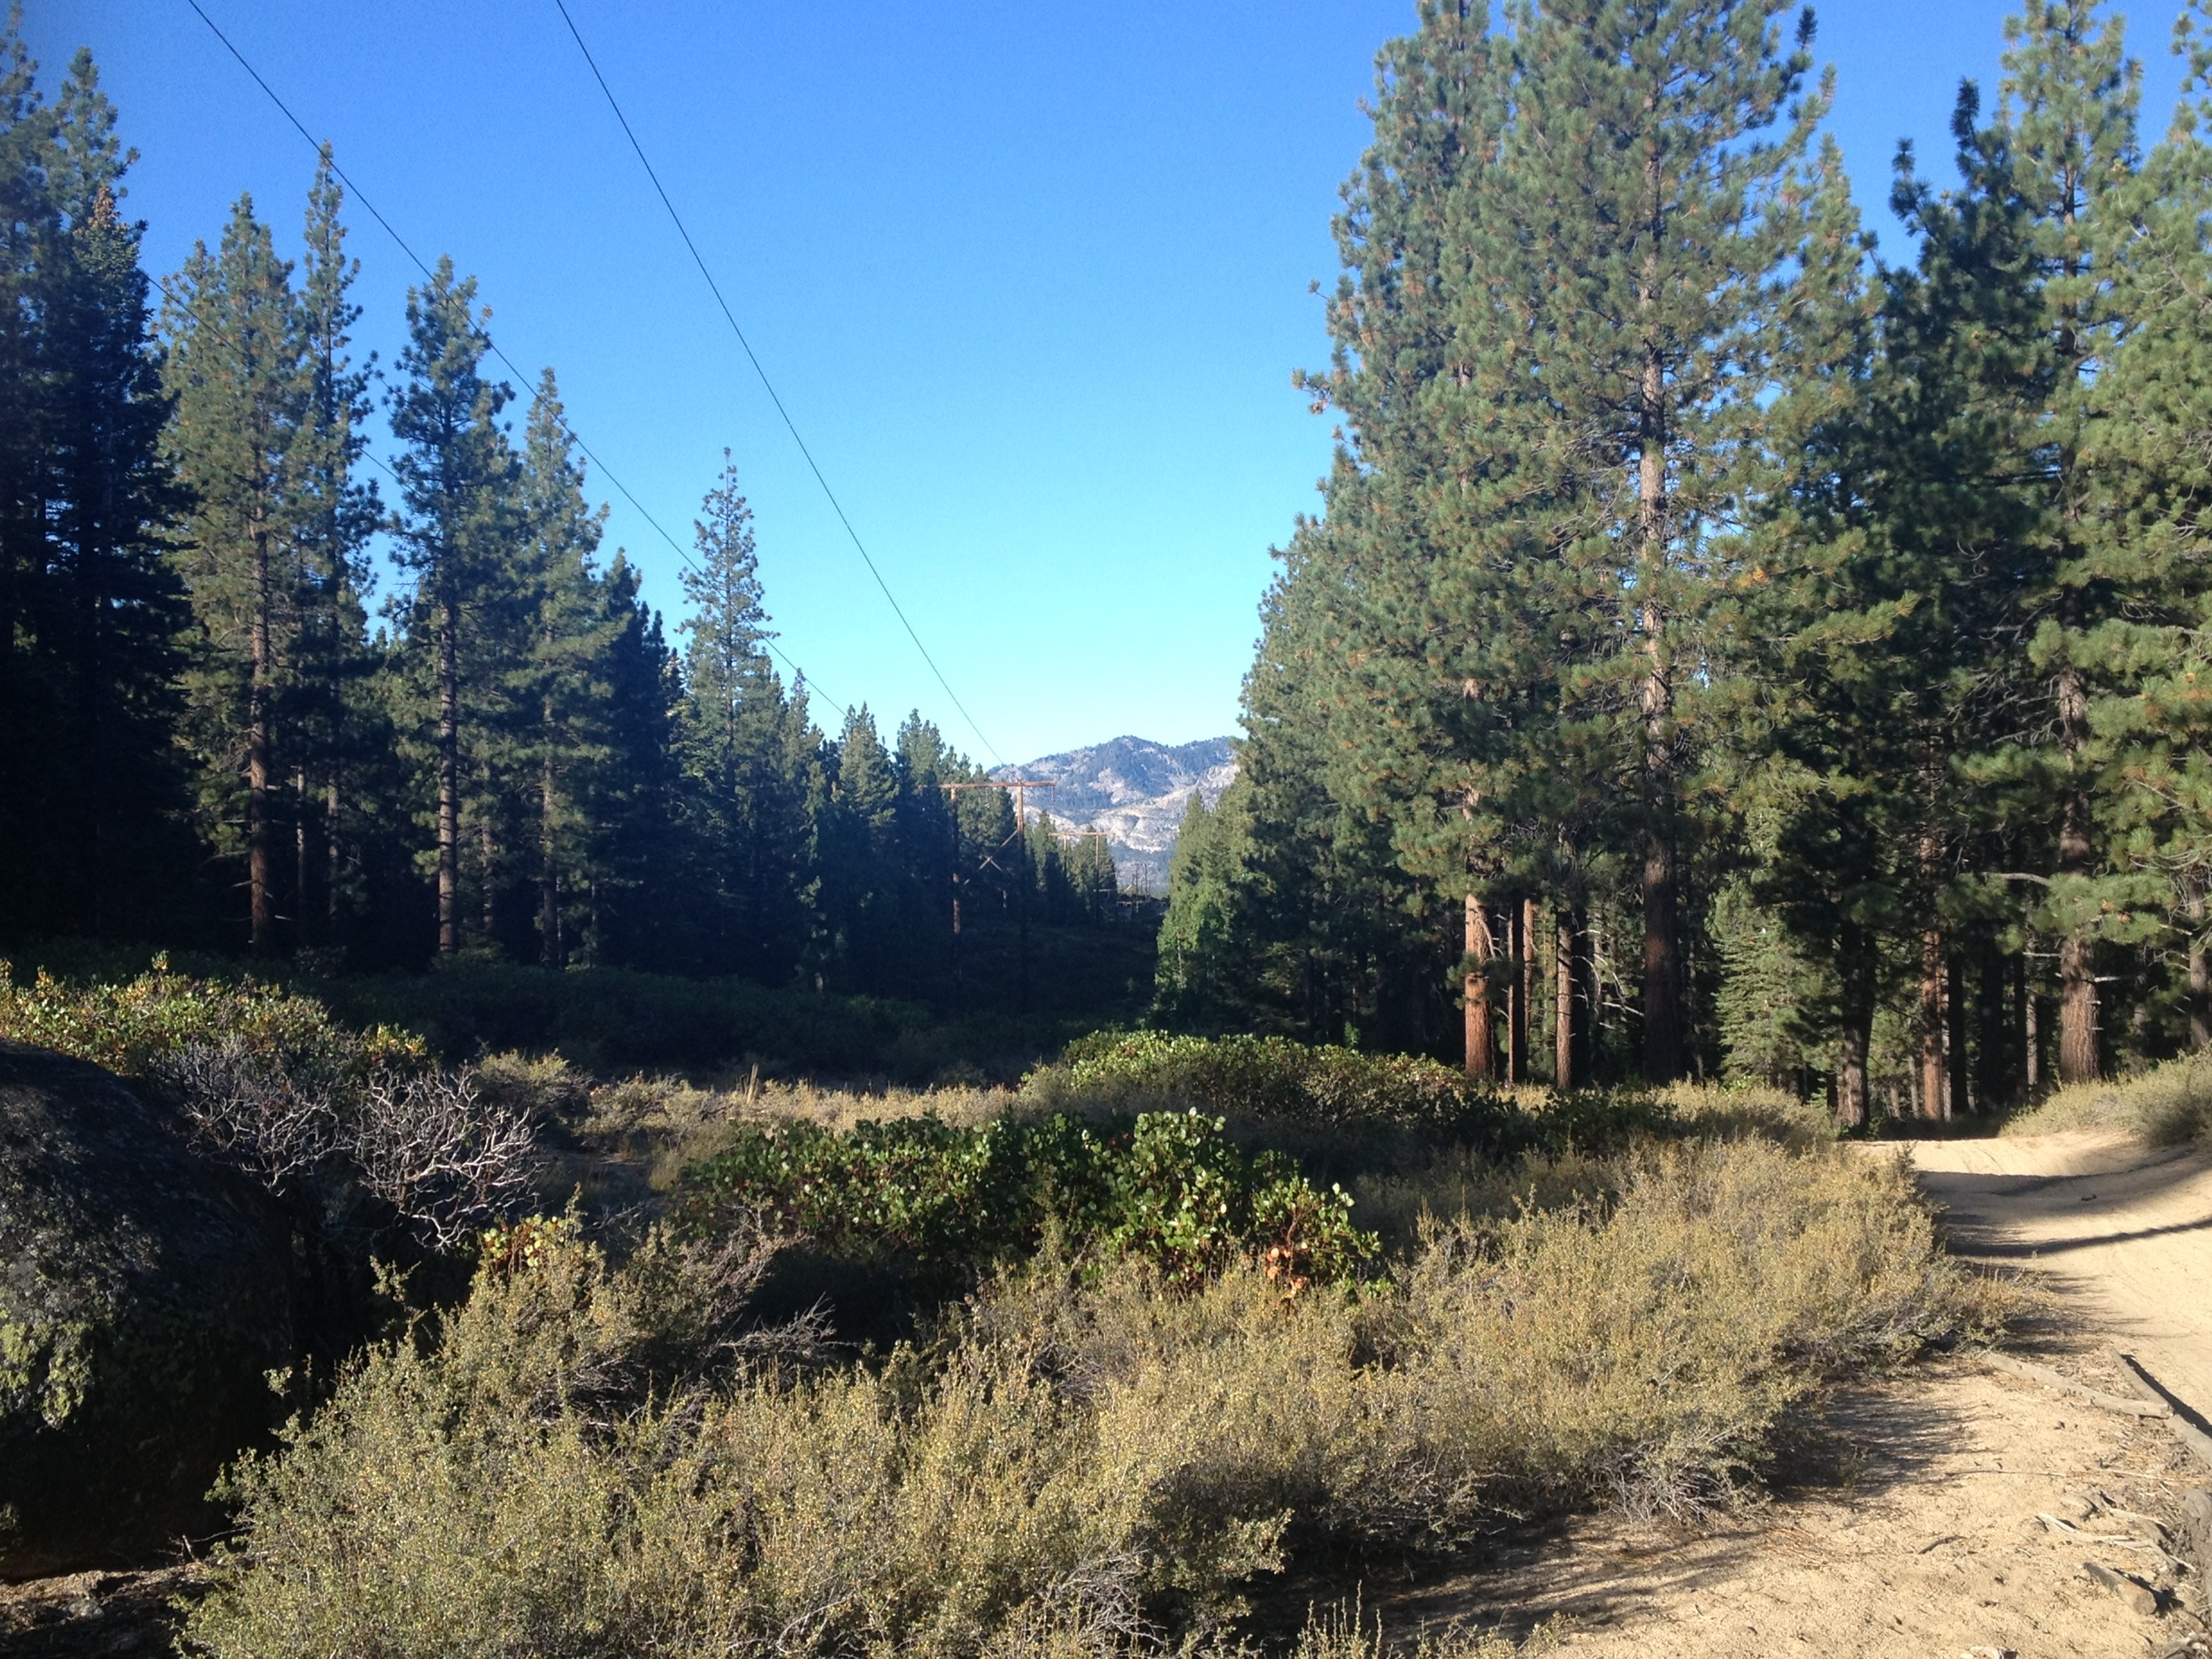 The Powerline Trail, near Lake Tahoe, California